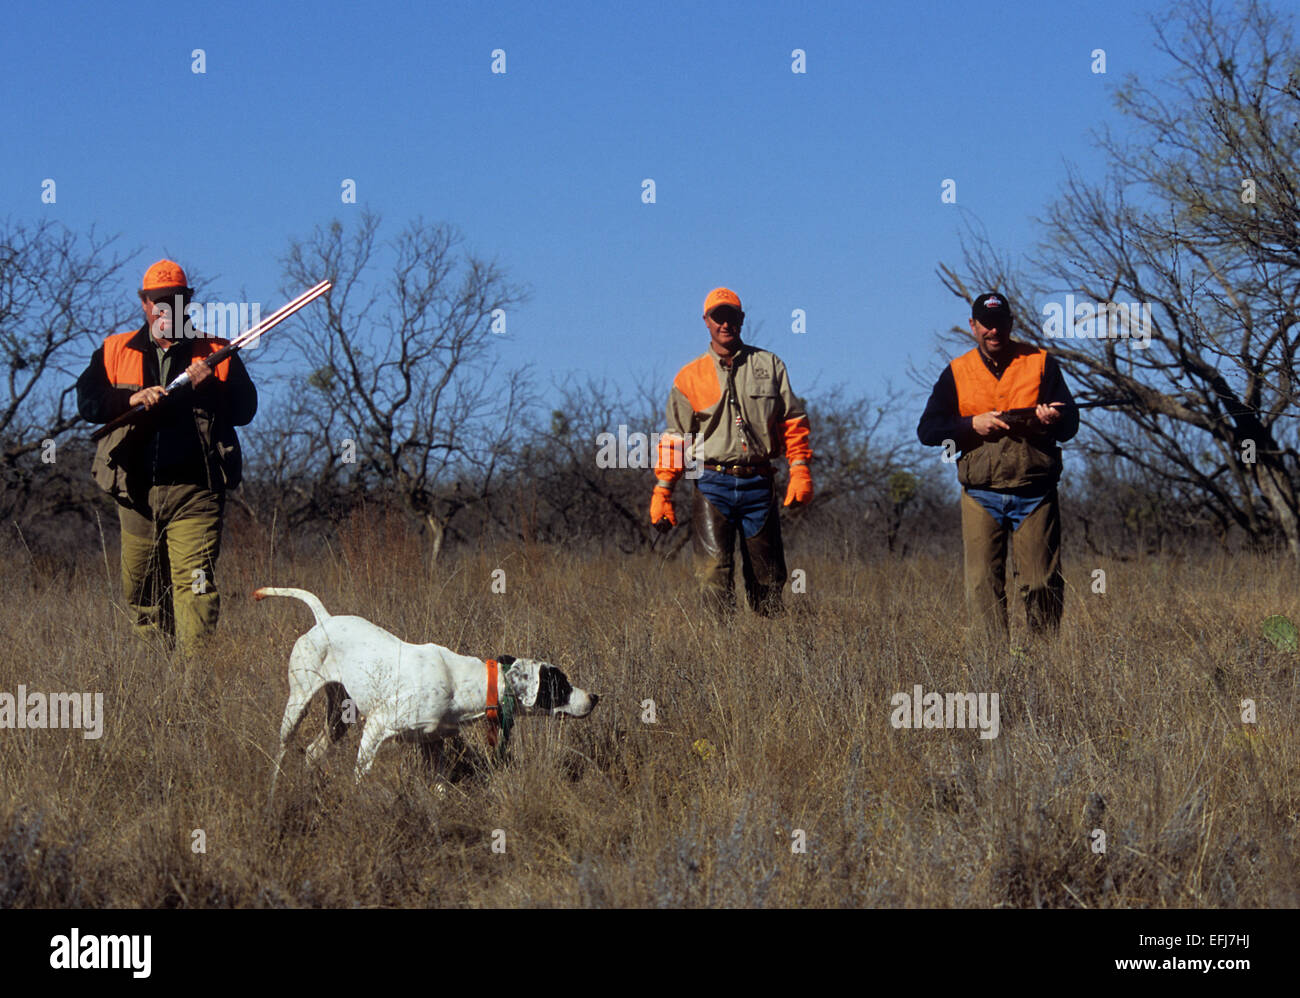 Texas quail hunters approach an English Pointer dog pointing a covey of quail - Stock Image